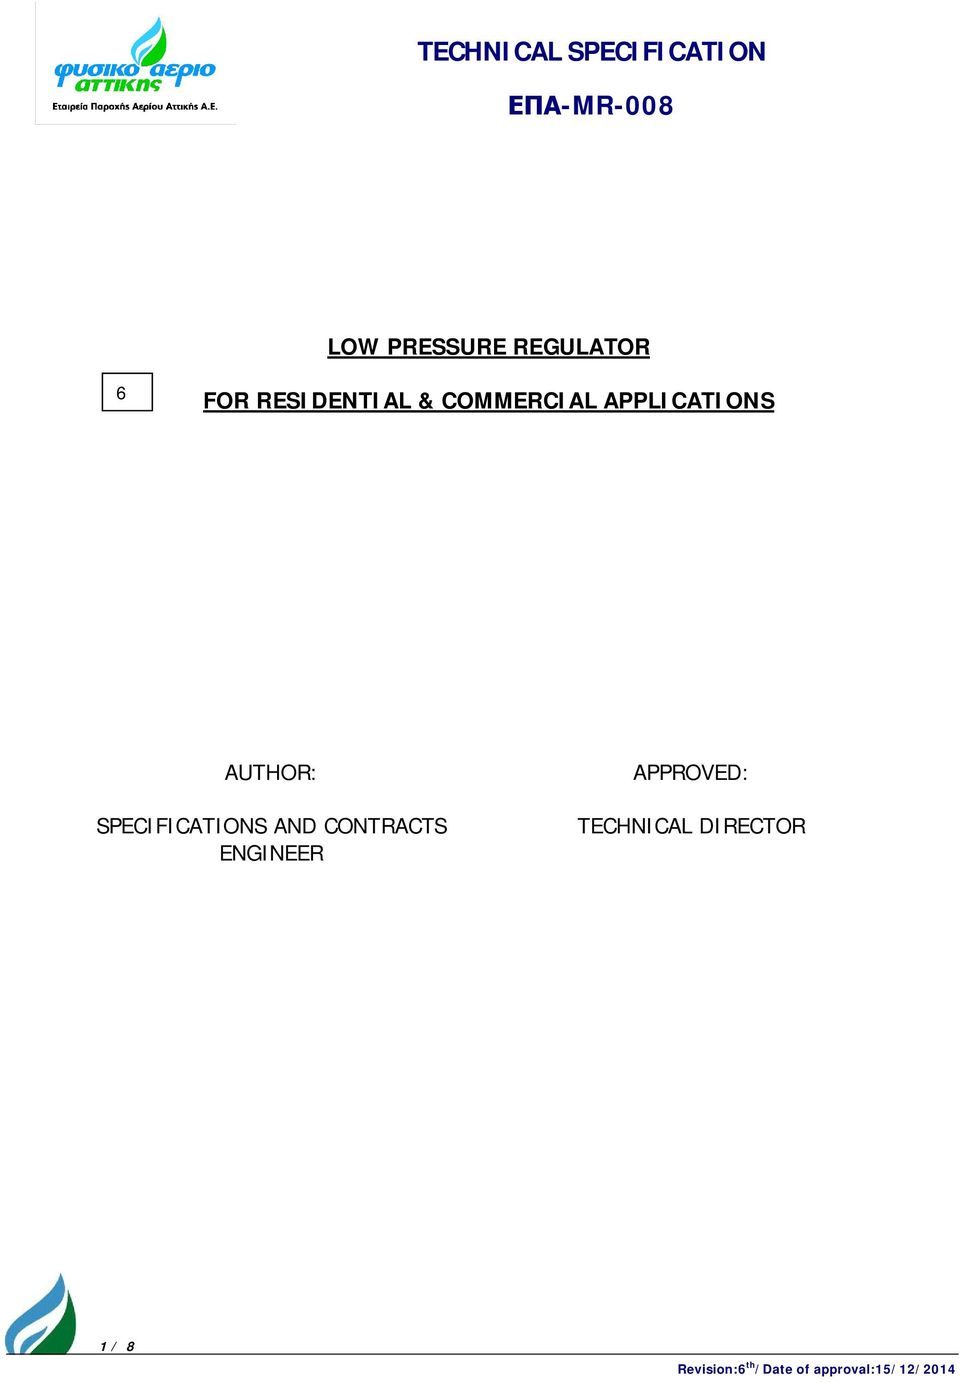 SPECIFICATIONS AND CONTRACTS ENGINEER APPROVED: